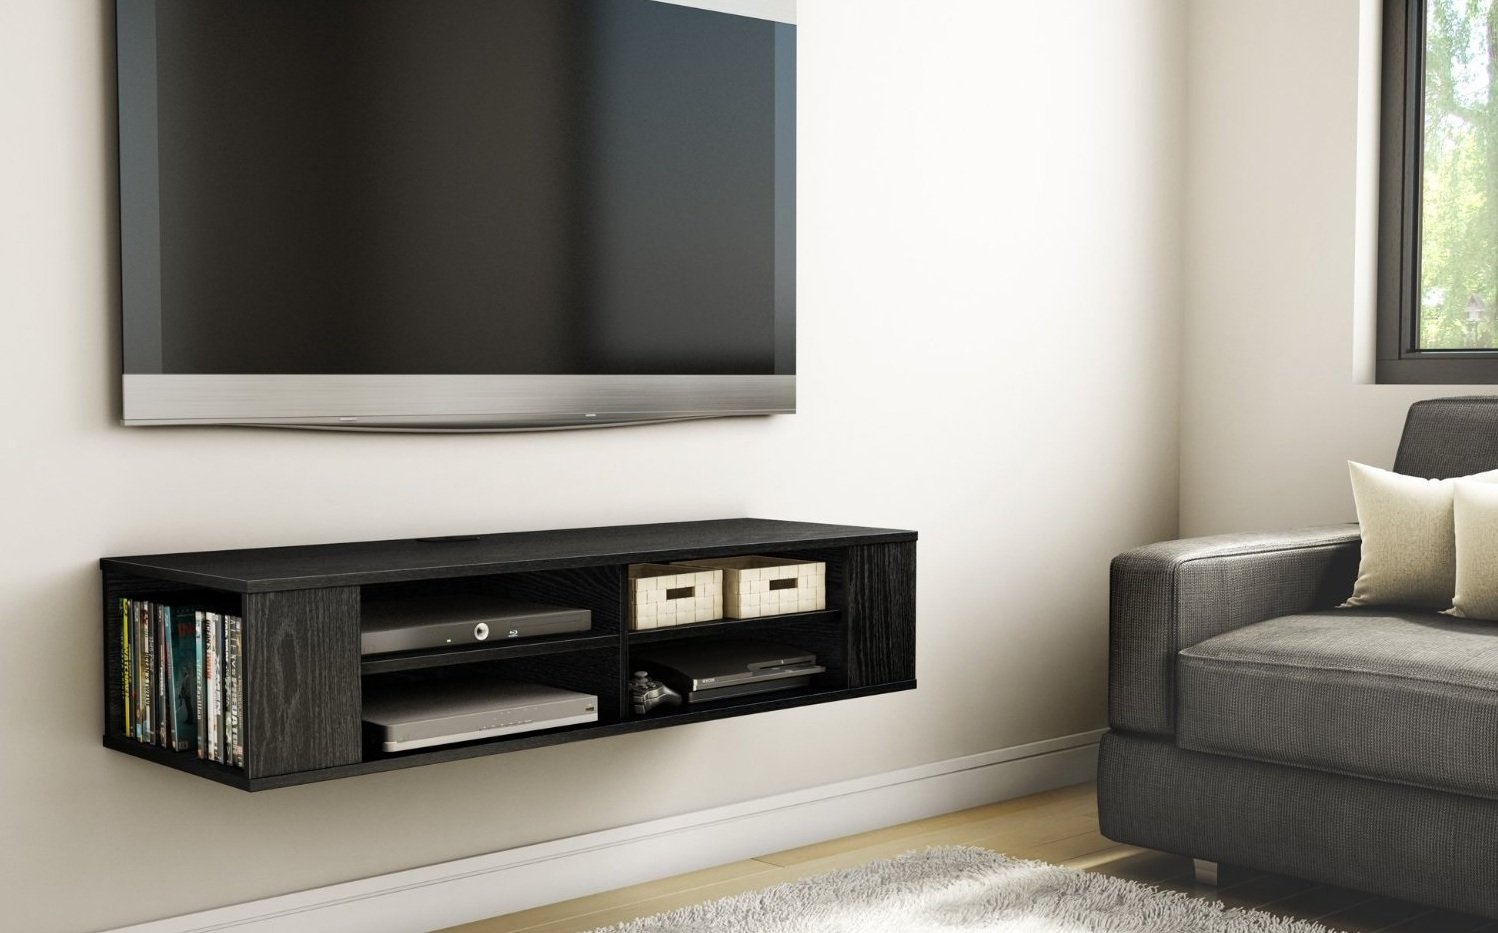 TV Black Media Floating Entertainment Center Shelf Cabinet Office ...